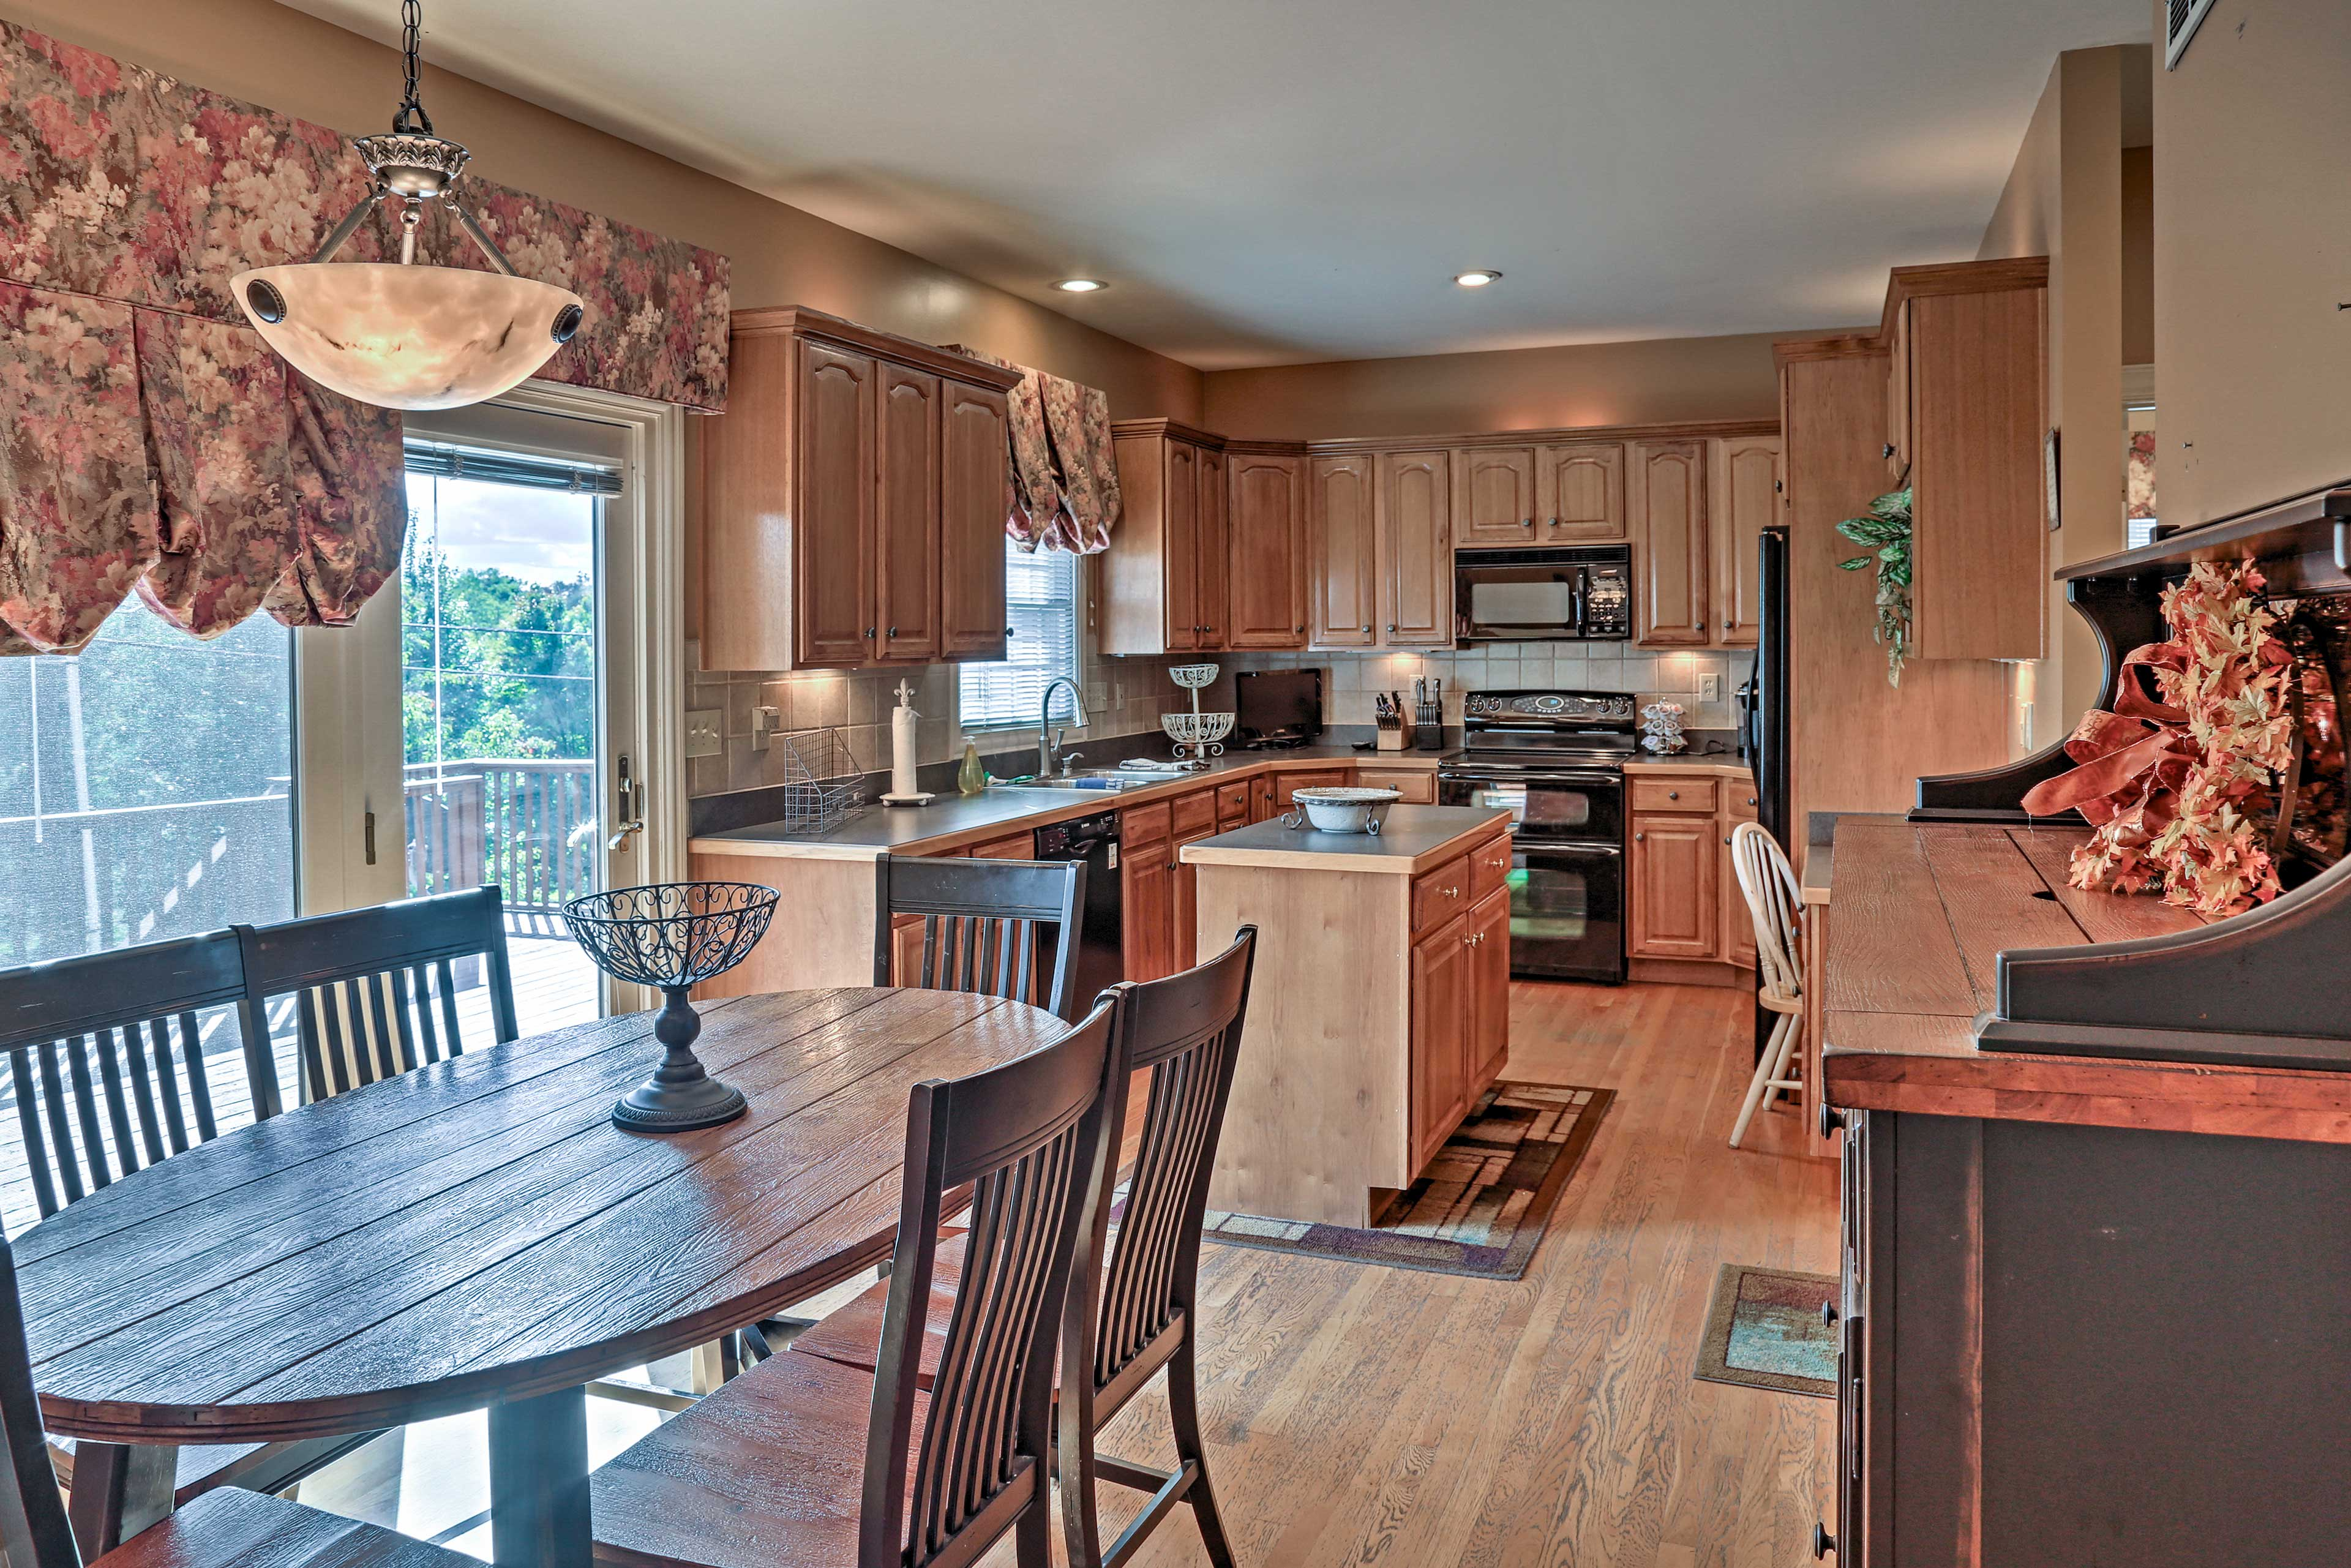 Have a seat at the kitchen table as you await a home-cooked meal.